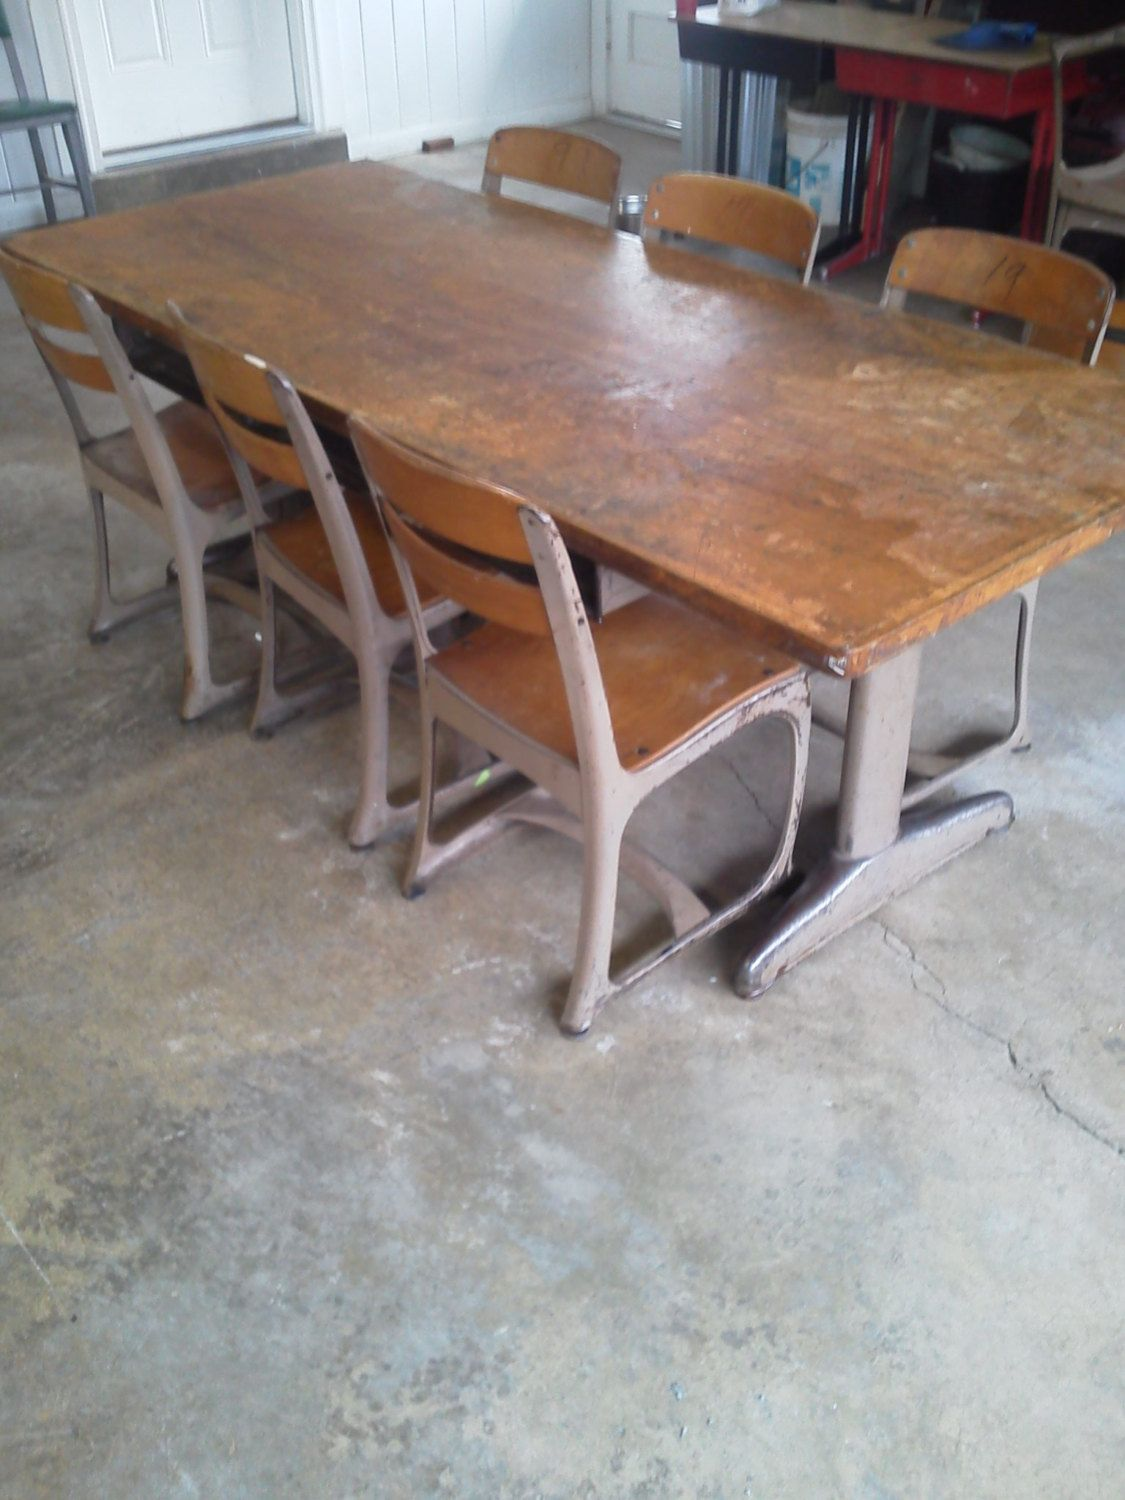 Incroyable American Seating Schoolhouse Table By Ripley10 On Etsy